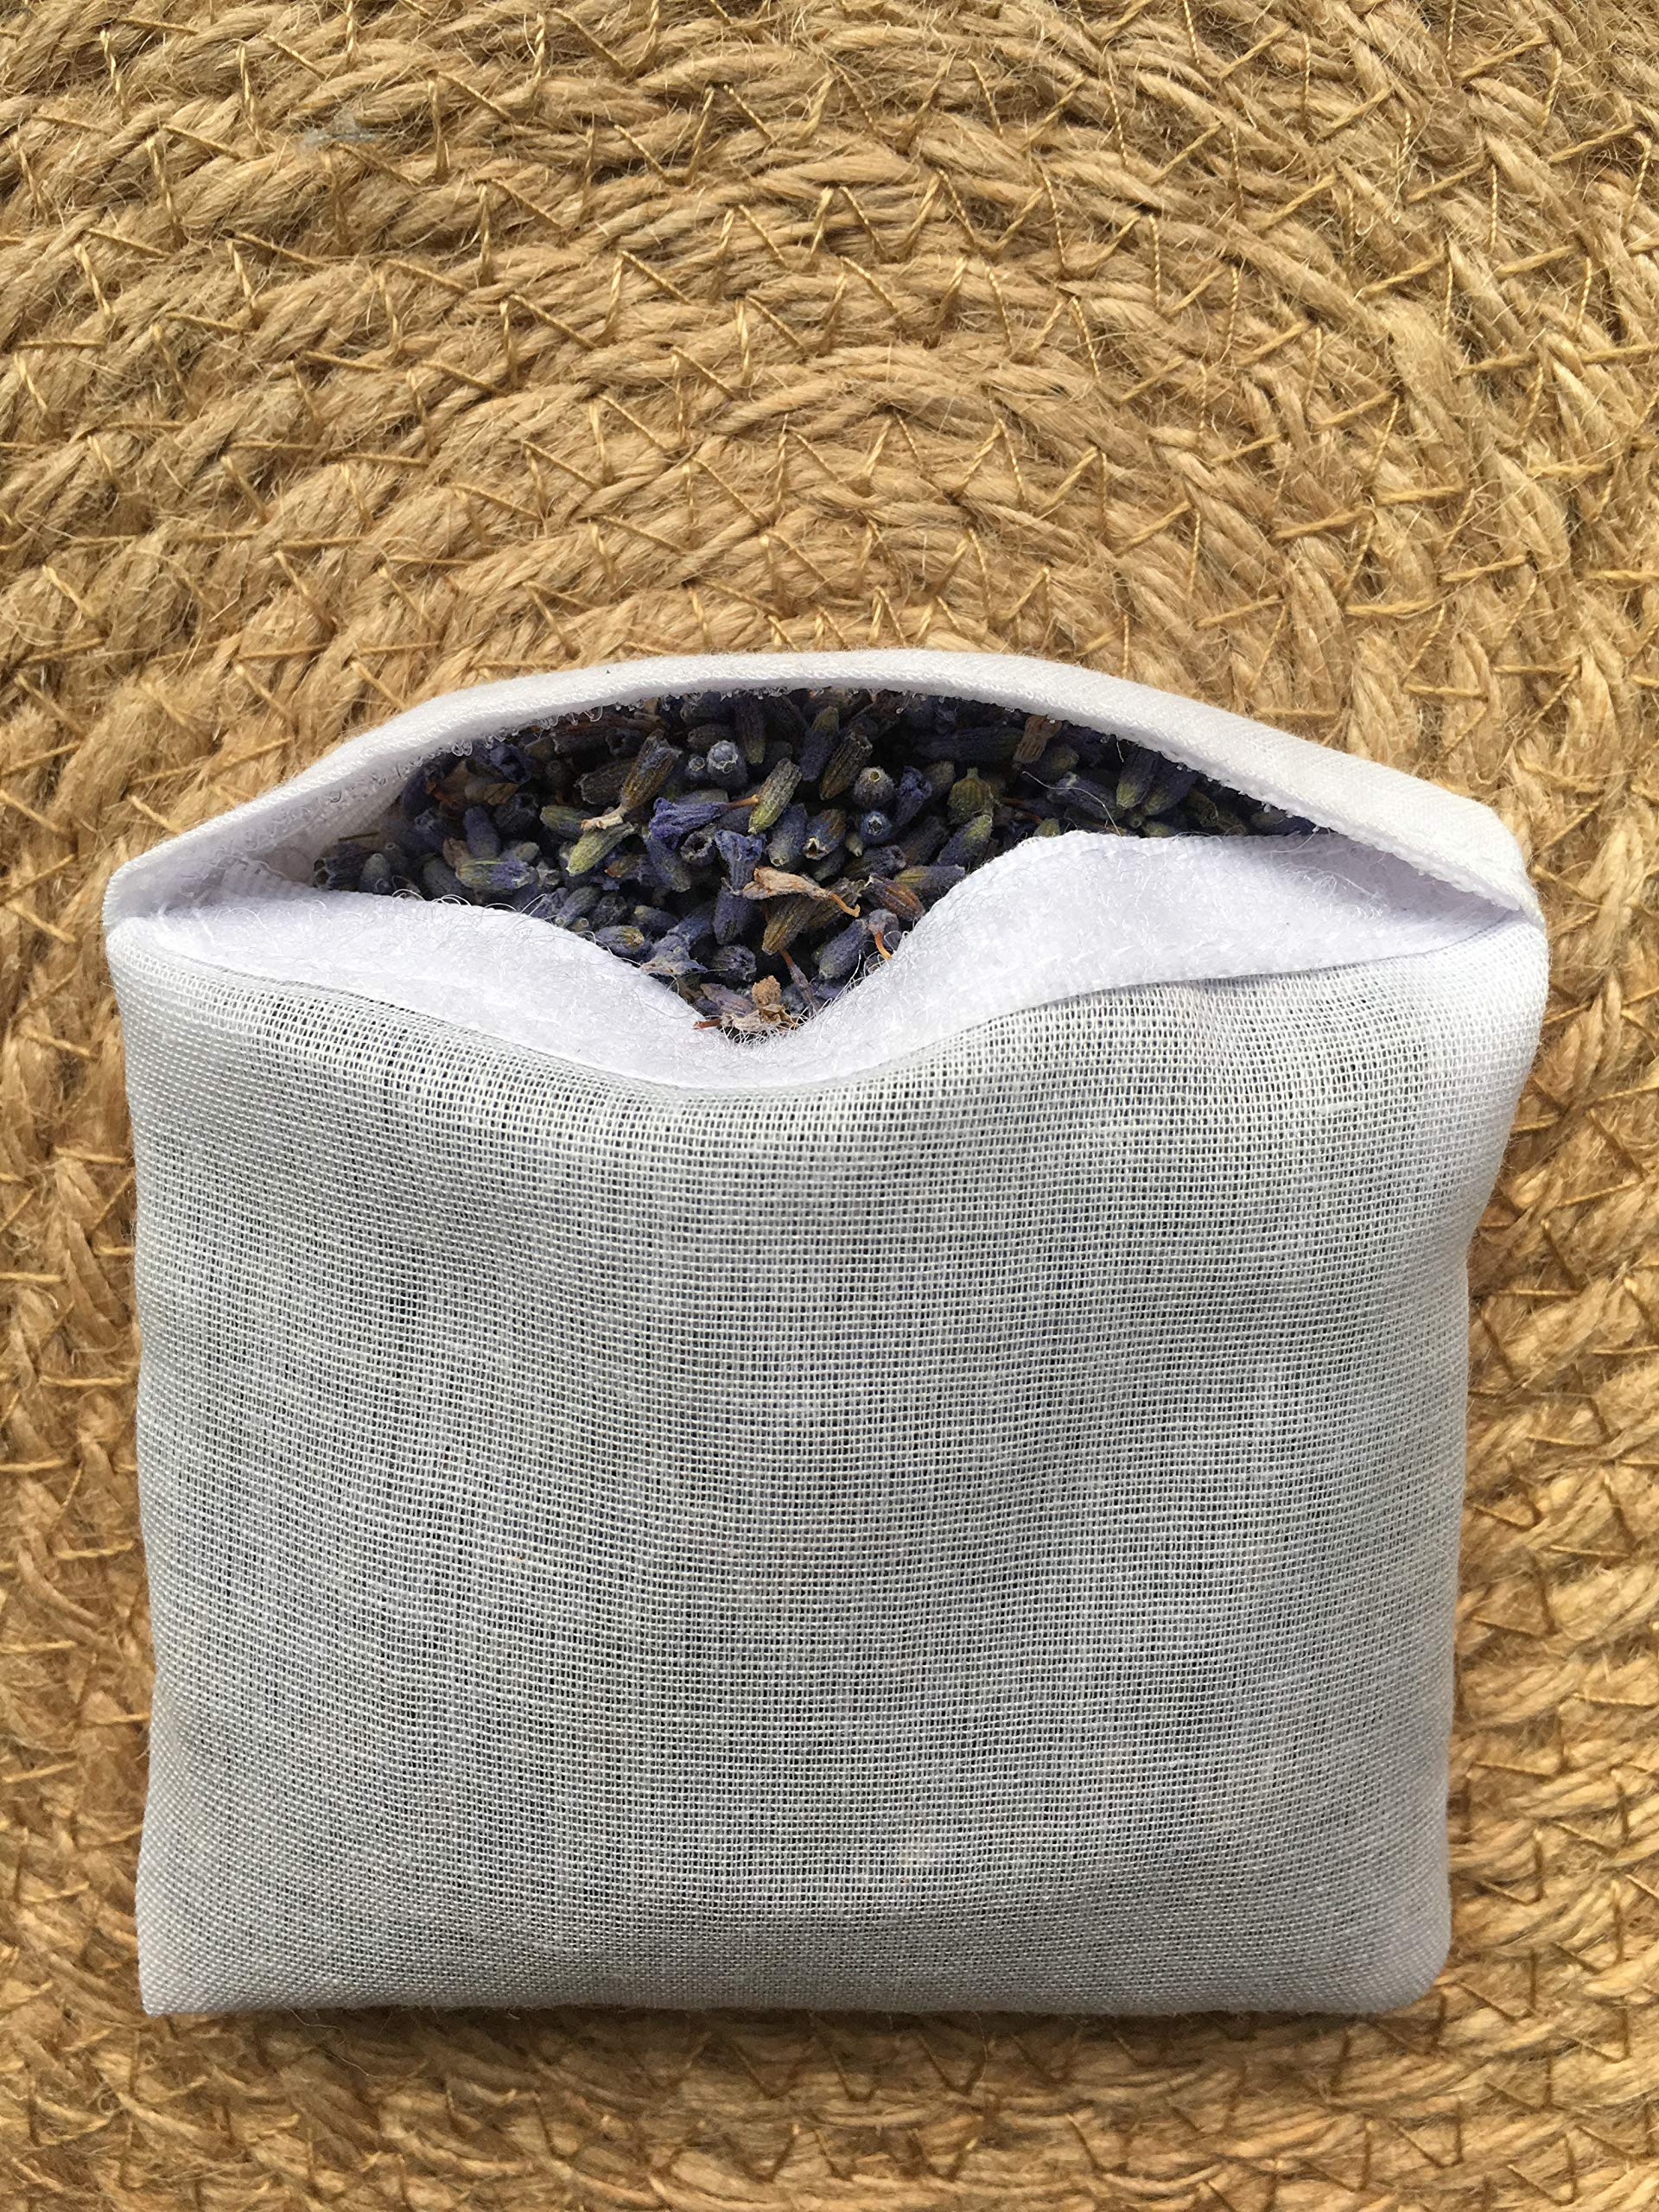 Hand Embroidered Lavender Pillow Sachet Bag ''Lavender Crown'' Natural Linen Cushion 6''x6'', Set of 3 by Minhcraft (Image #6)